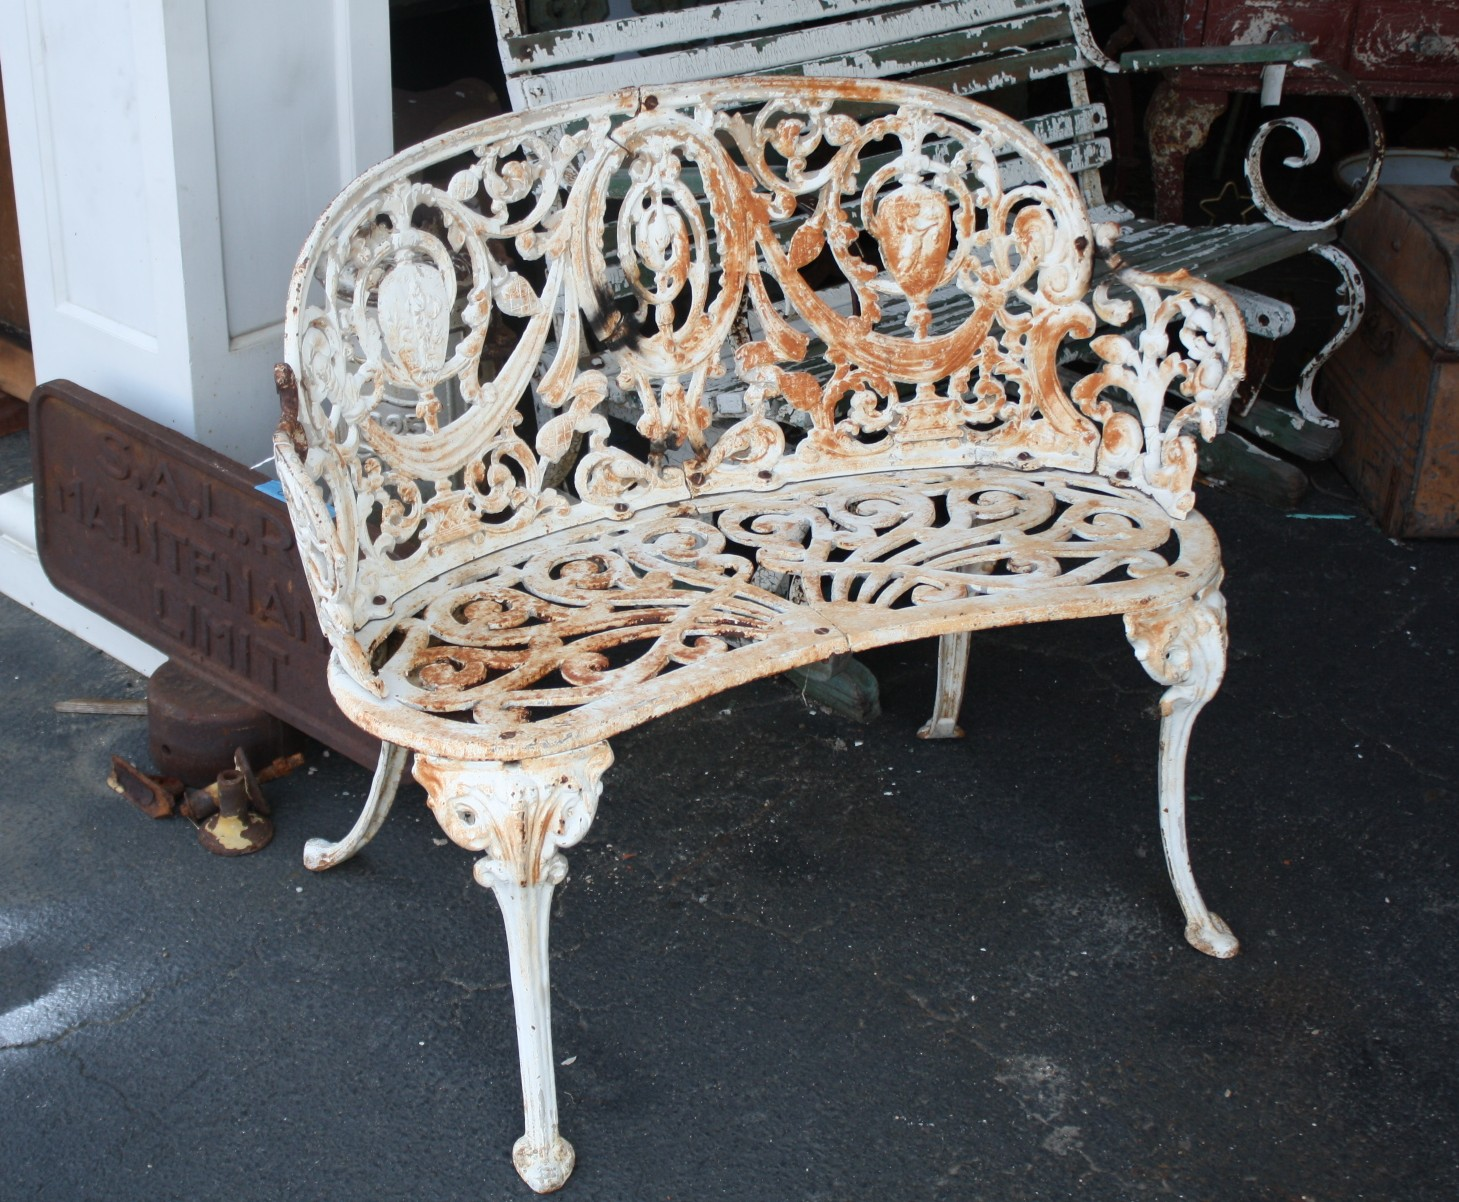 Super Ornate Cast Iron Garden Set - For Sale - Super Ornate Cast Iron Garden Set For Sale Antiques.com Classifieds